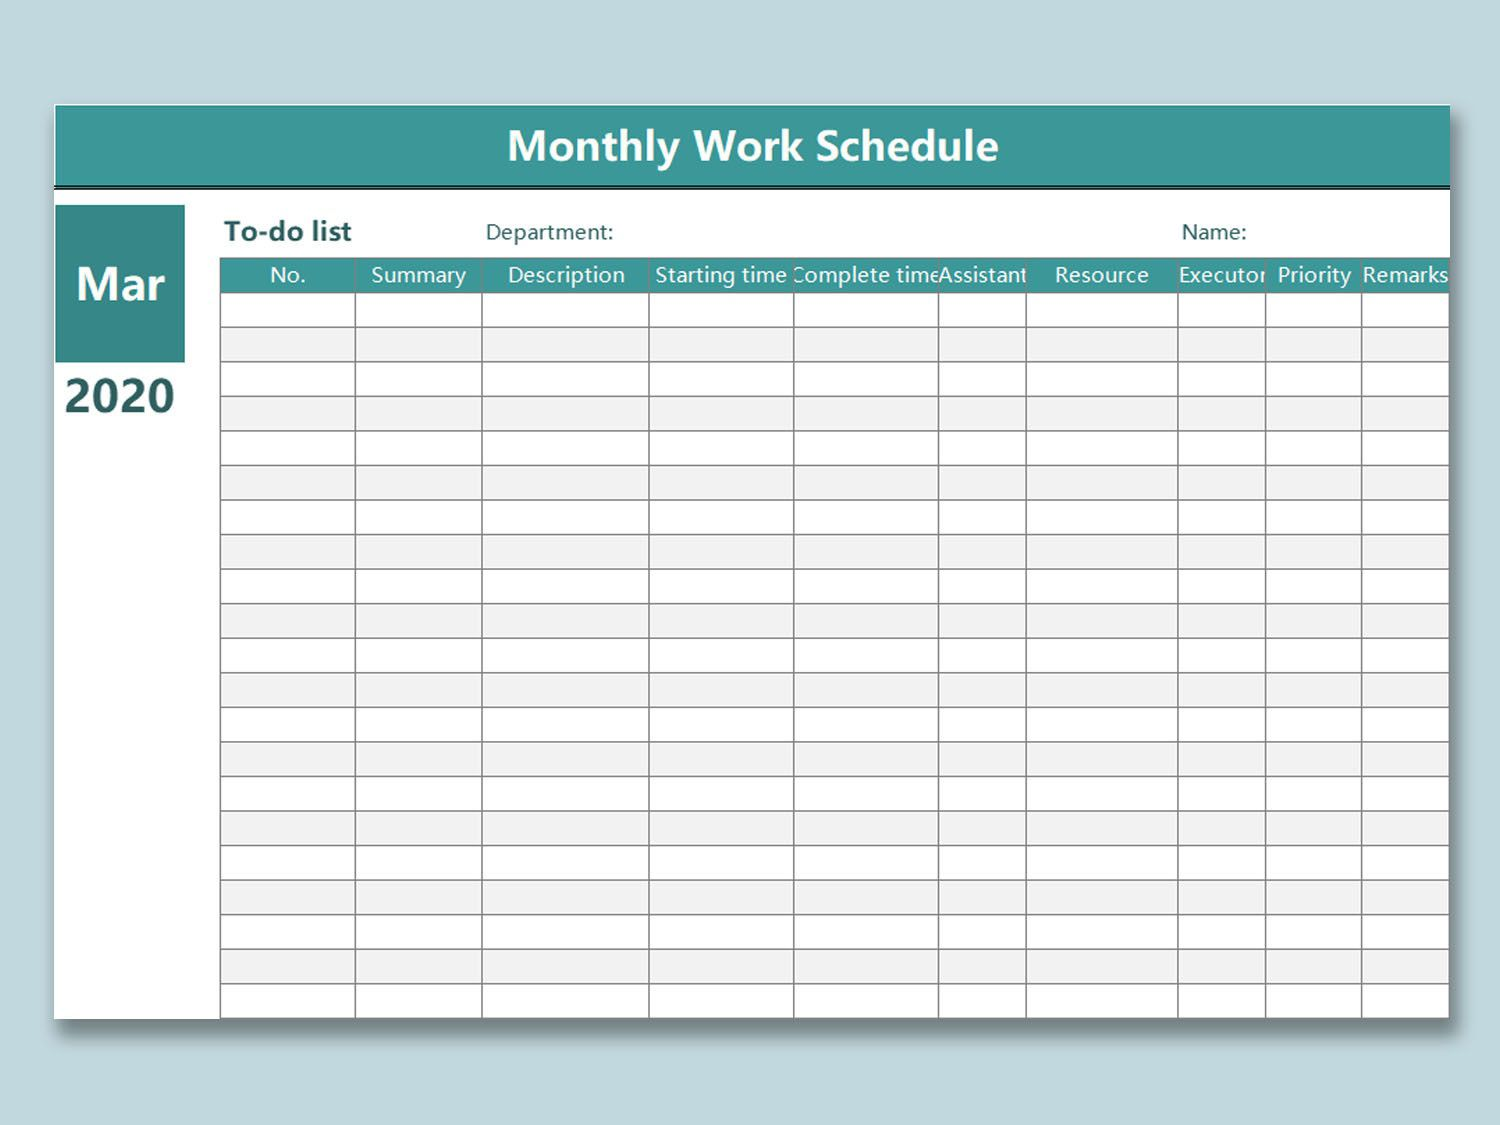 004 Shocking Free Employee Scheduling Template High Resolution  Templates Weekly Work Schedule Printable Training Plan ExcelFull